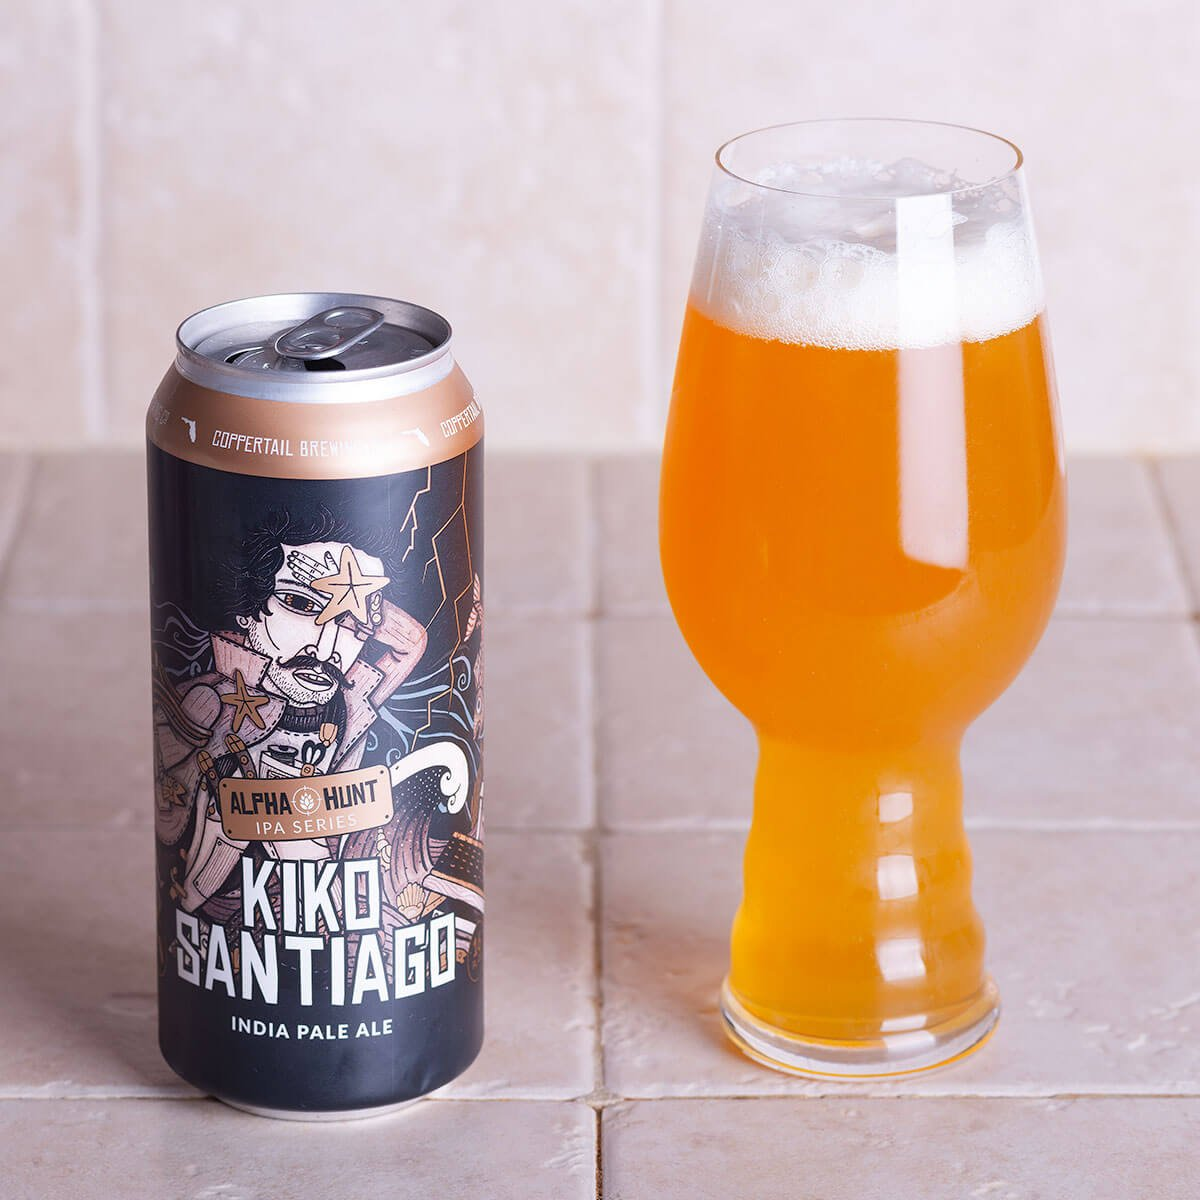 Kiko Santiago is an American IPA brewed by Coppertail Brewing Co. whose hoppy palate imparts juicy citrus and piney flavors.